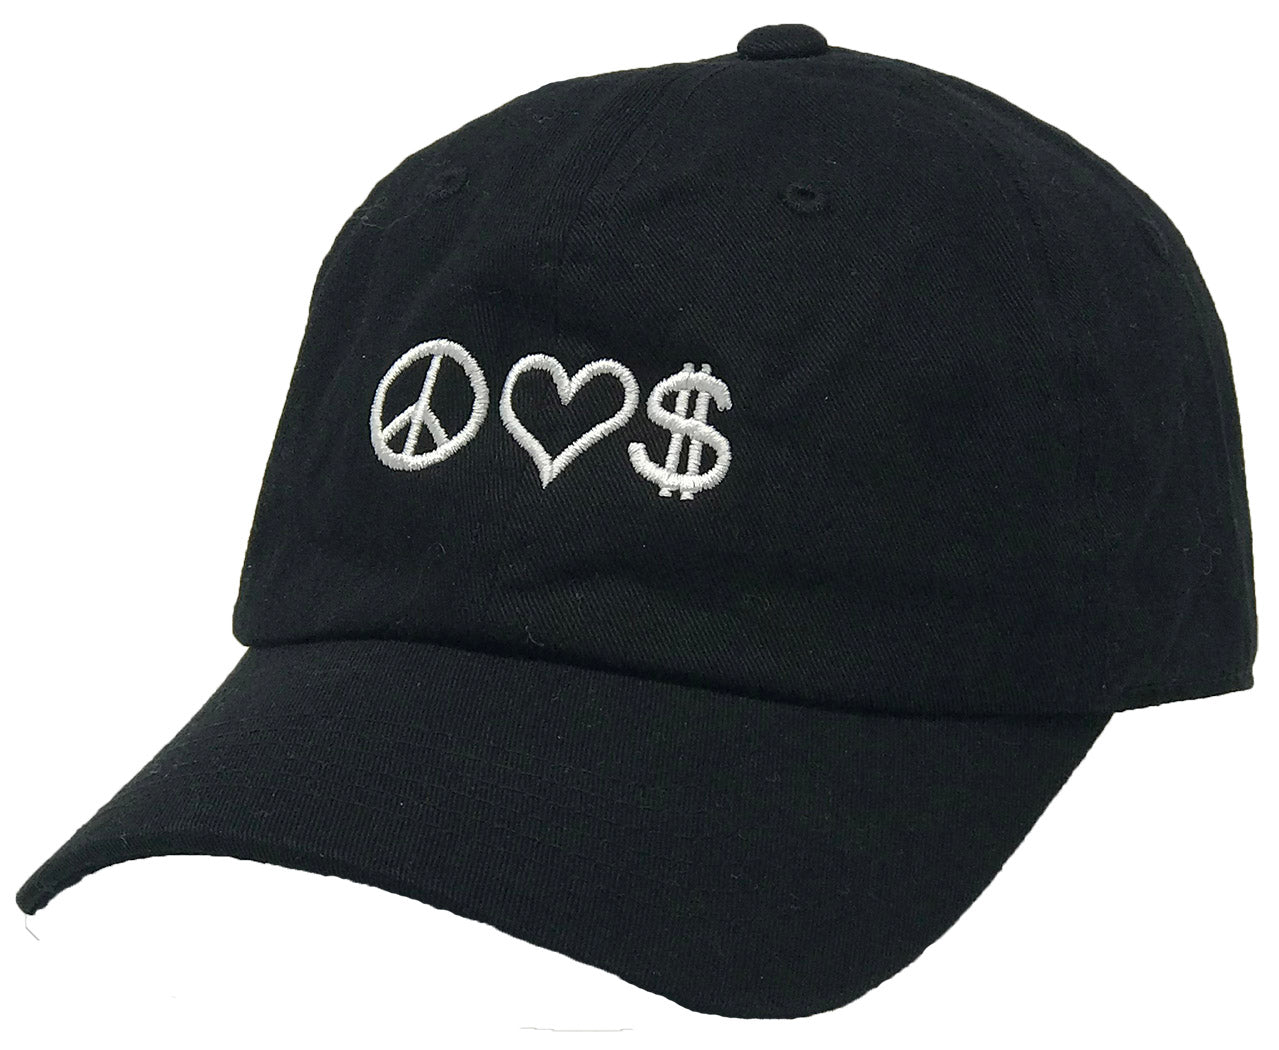 Unconstructed Dad Hat - Peace, Love, Money (Black)